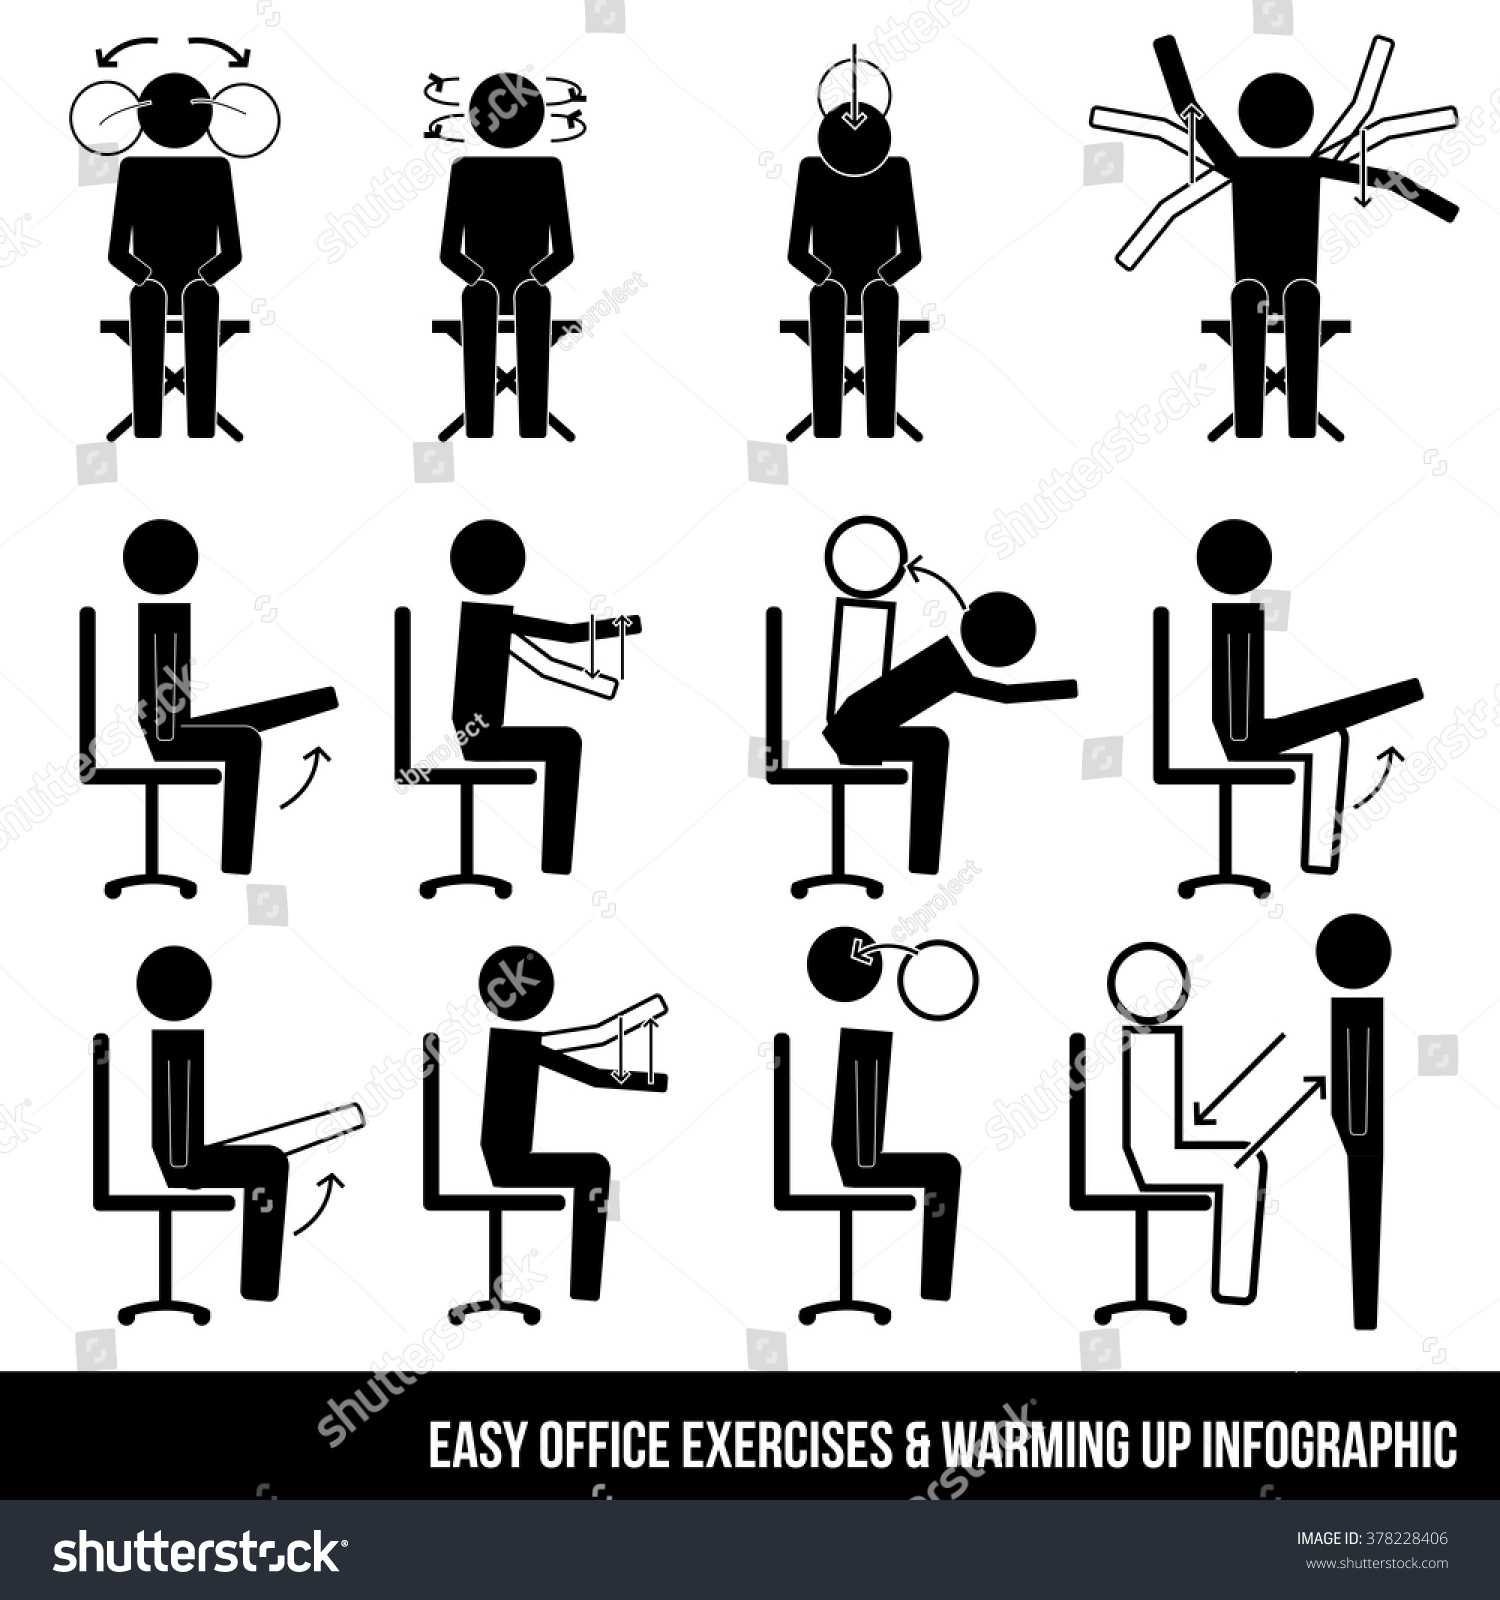 Workout Exercises Office Workout Exercises